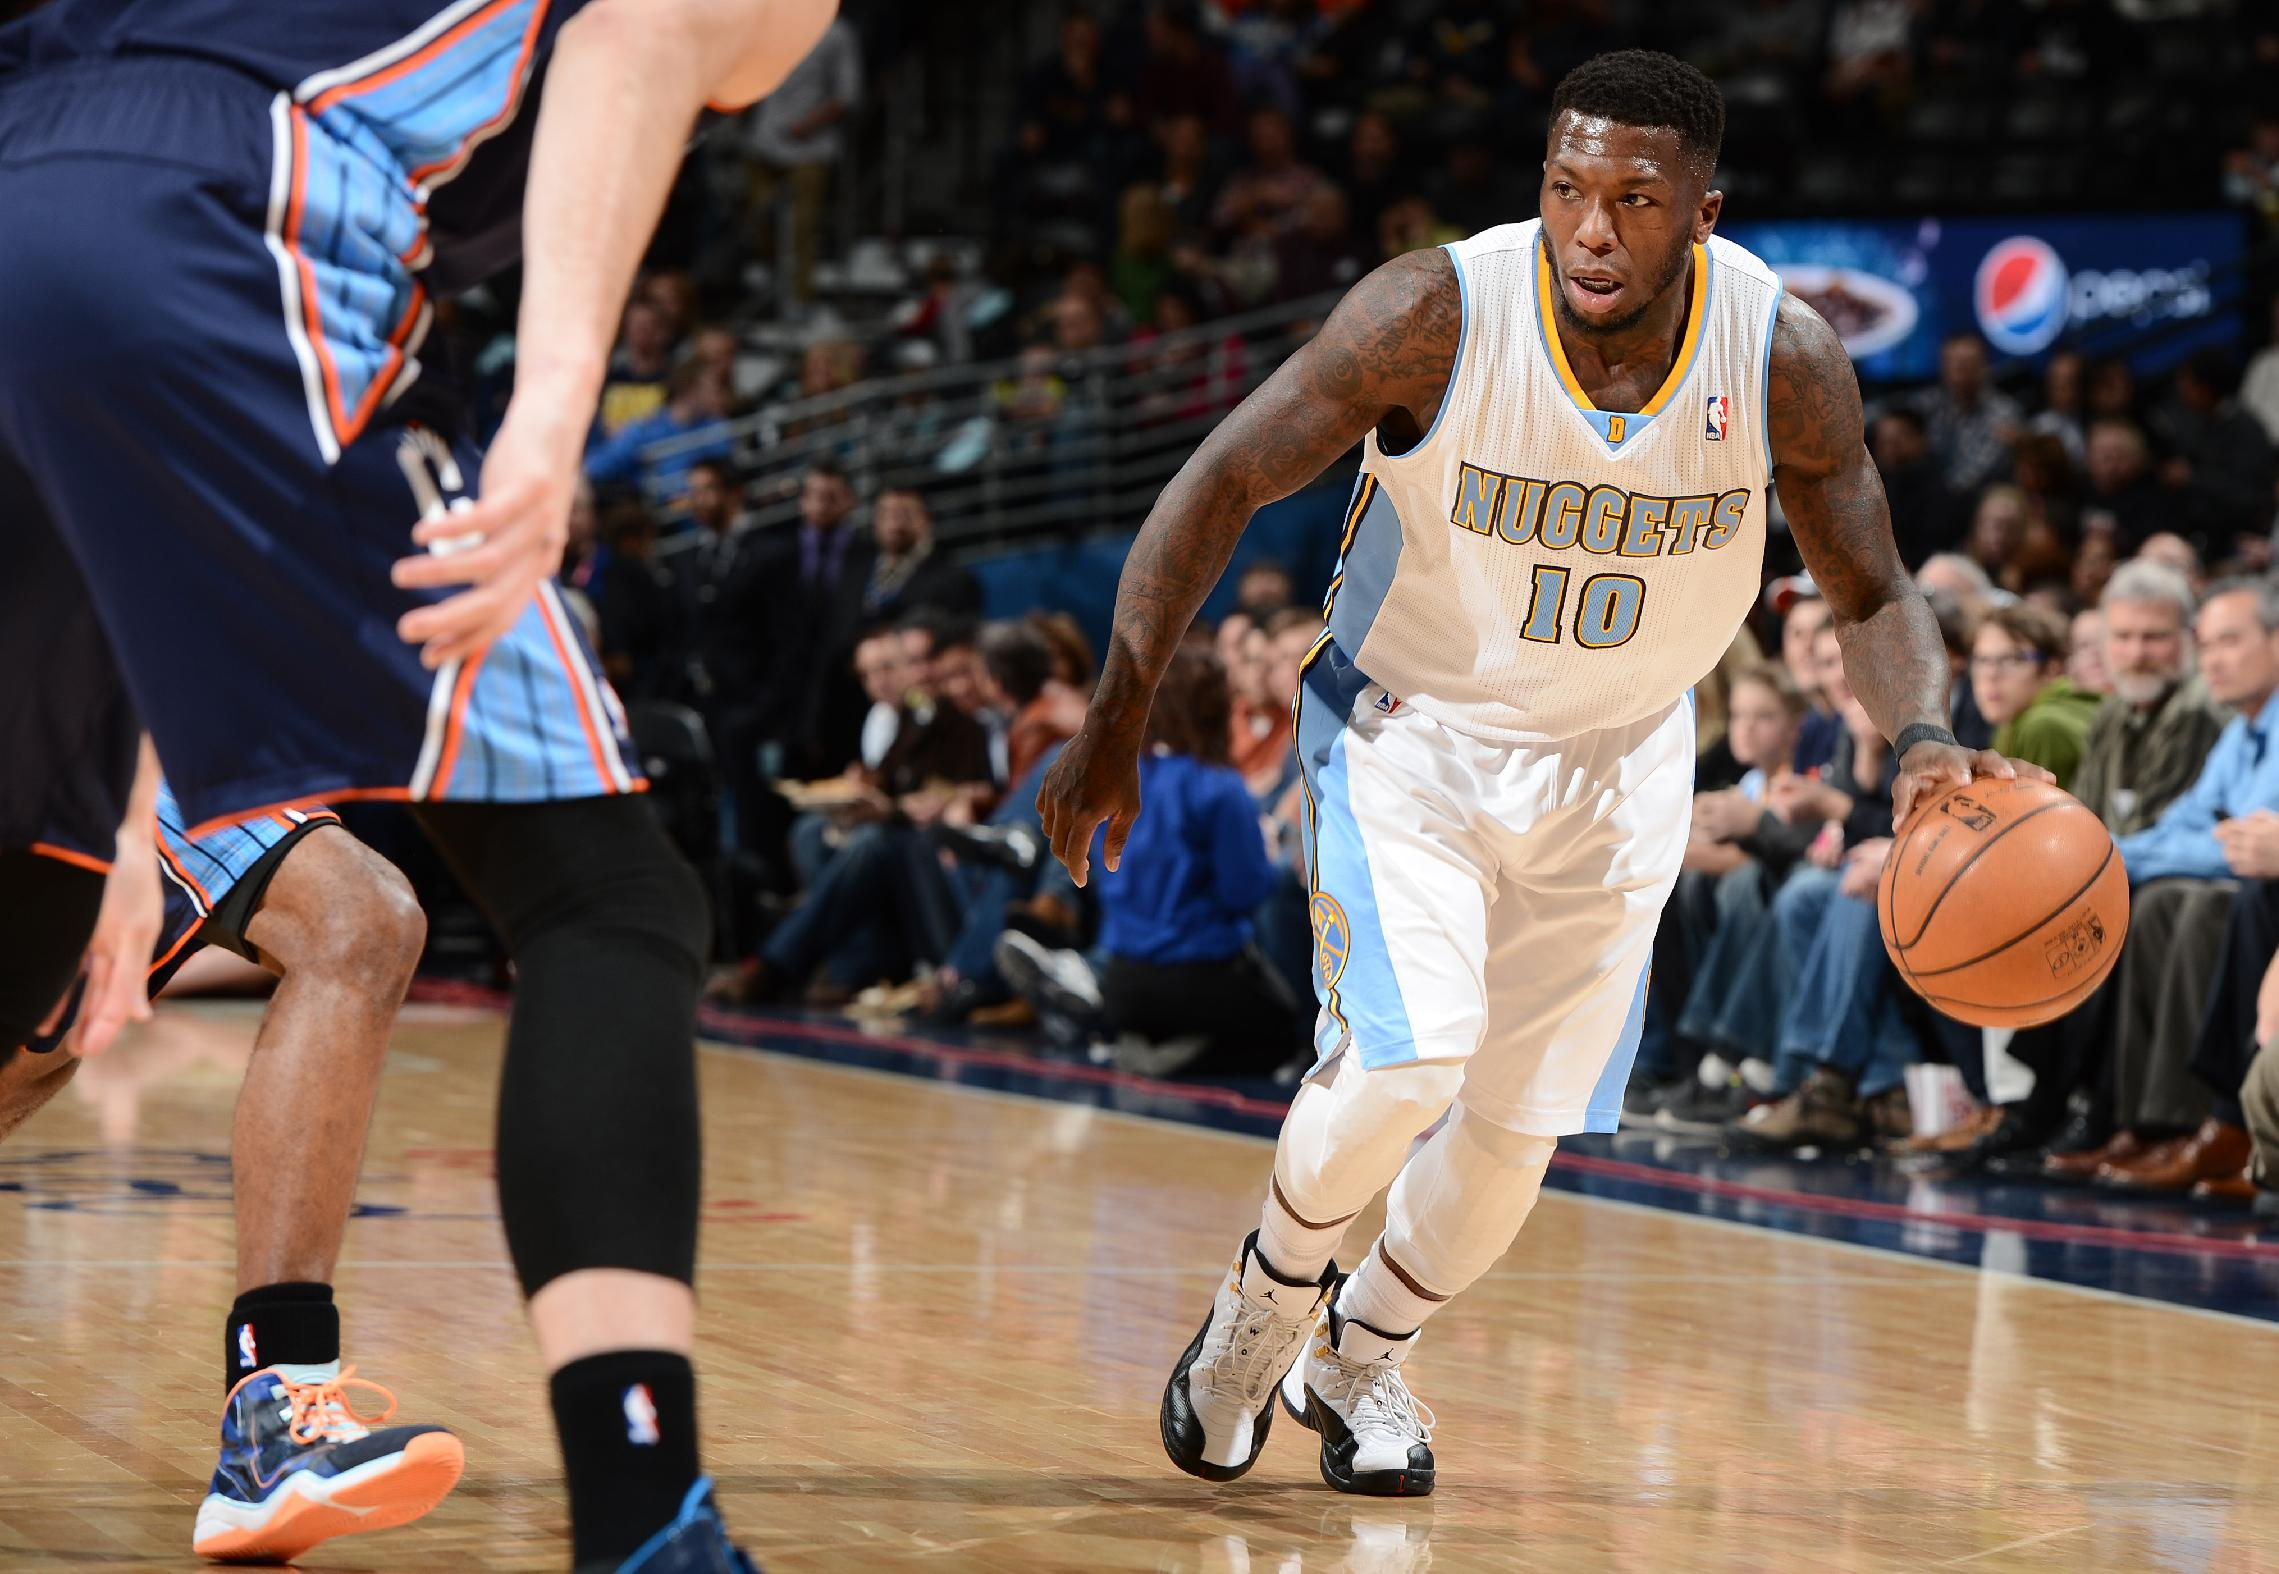 Nate Robinson is trying out with the Seahawks (Getty Images)